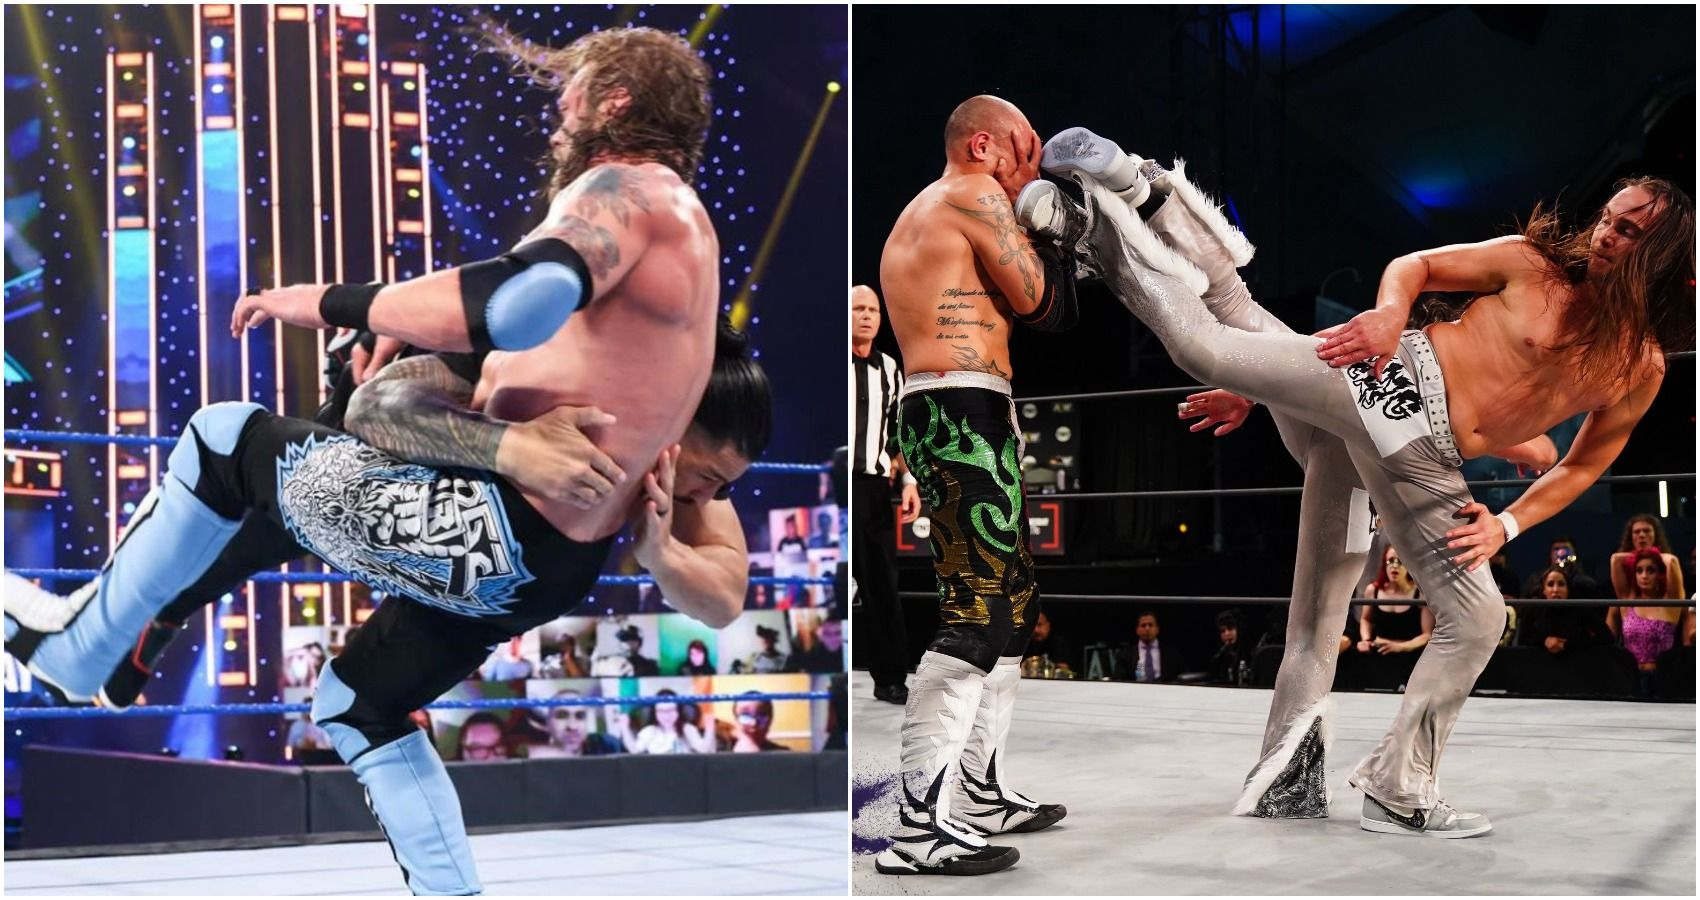 10 Most Commonly Used Finishers In Pro Wrestling | TheSportster